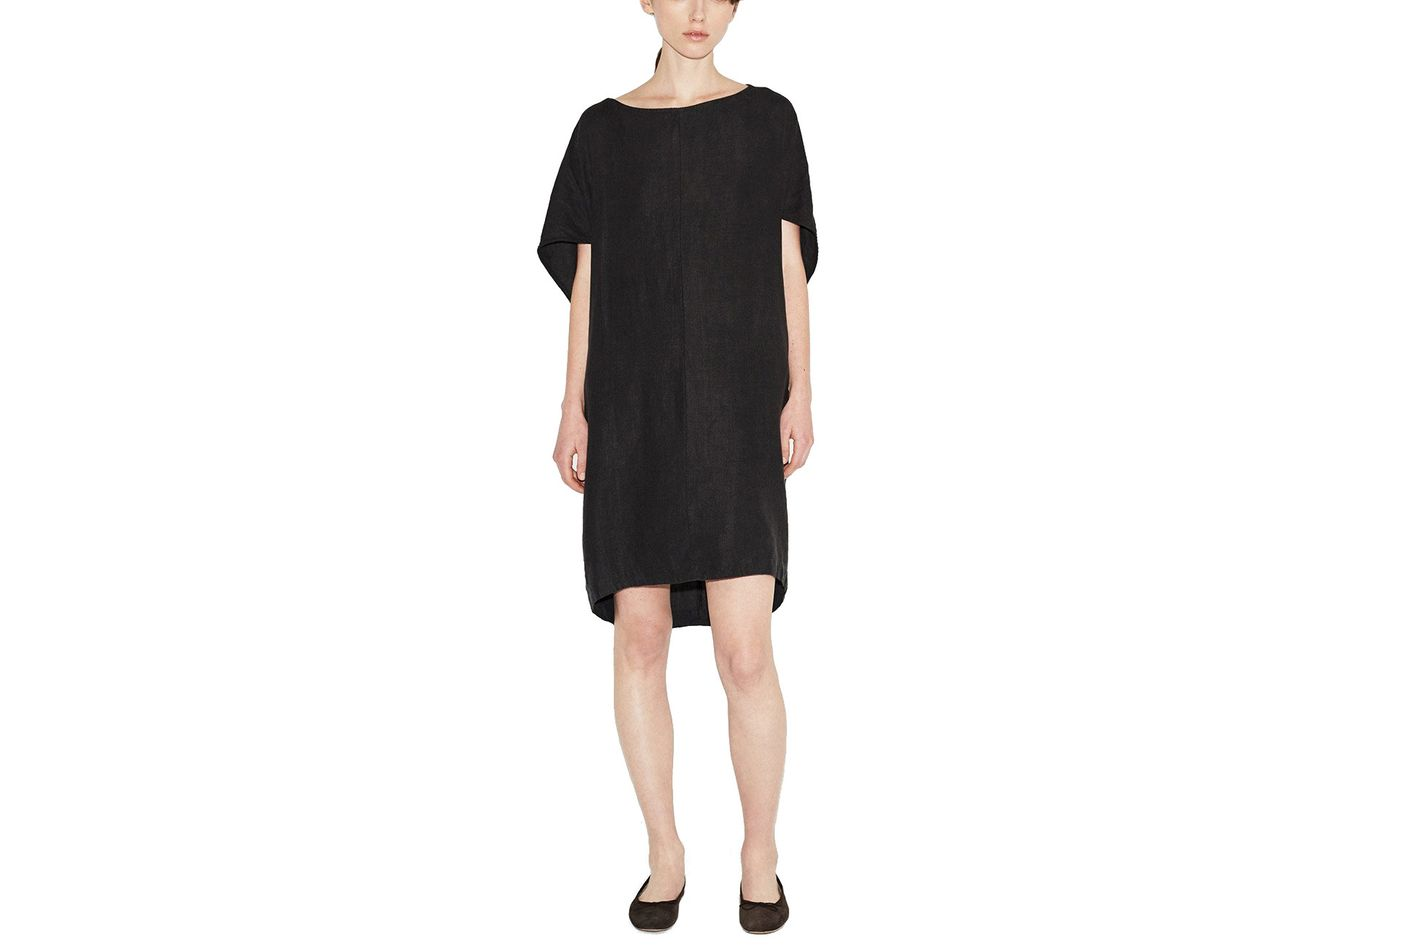 Black Crane Geometric Dress